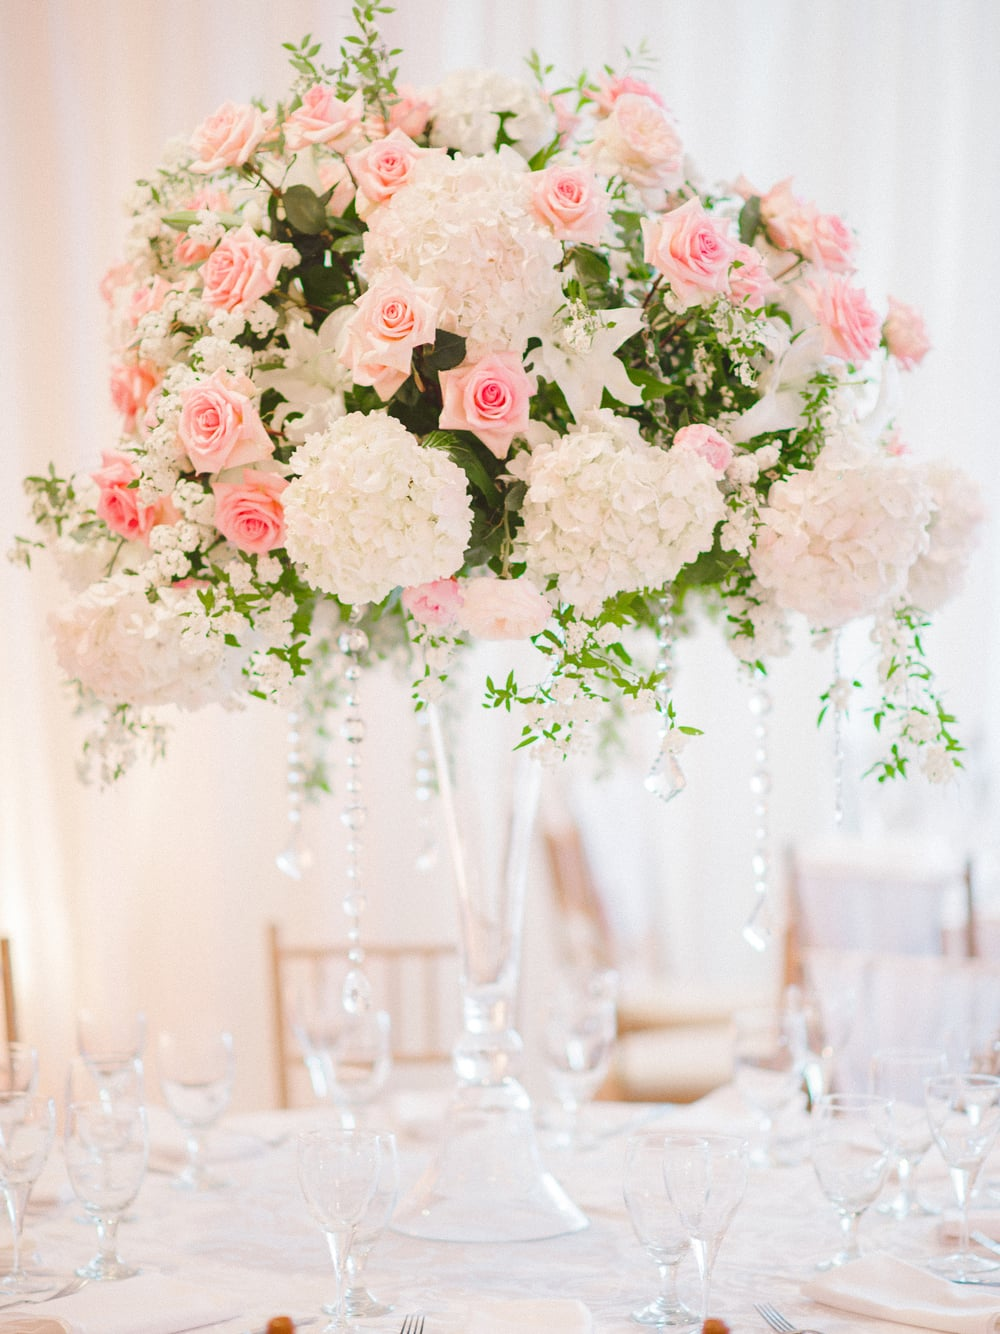 Tall pink rose and white hydrangea centerpiece by Blossoms Event at DeBordieu, SC wedding